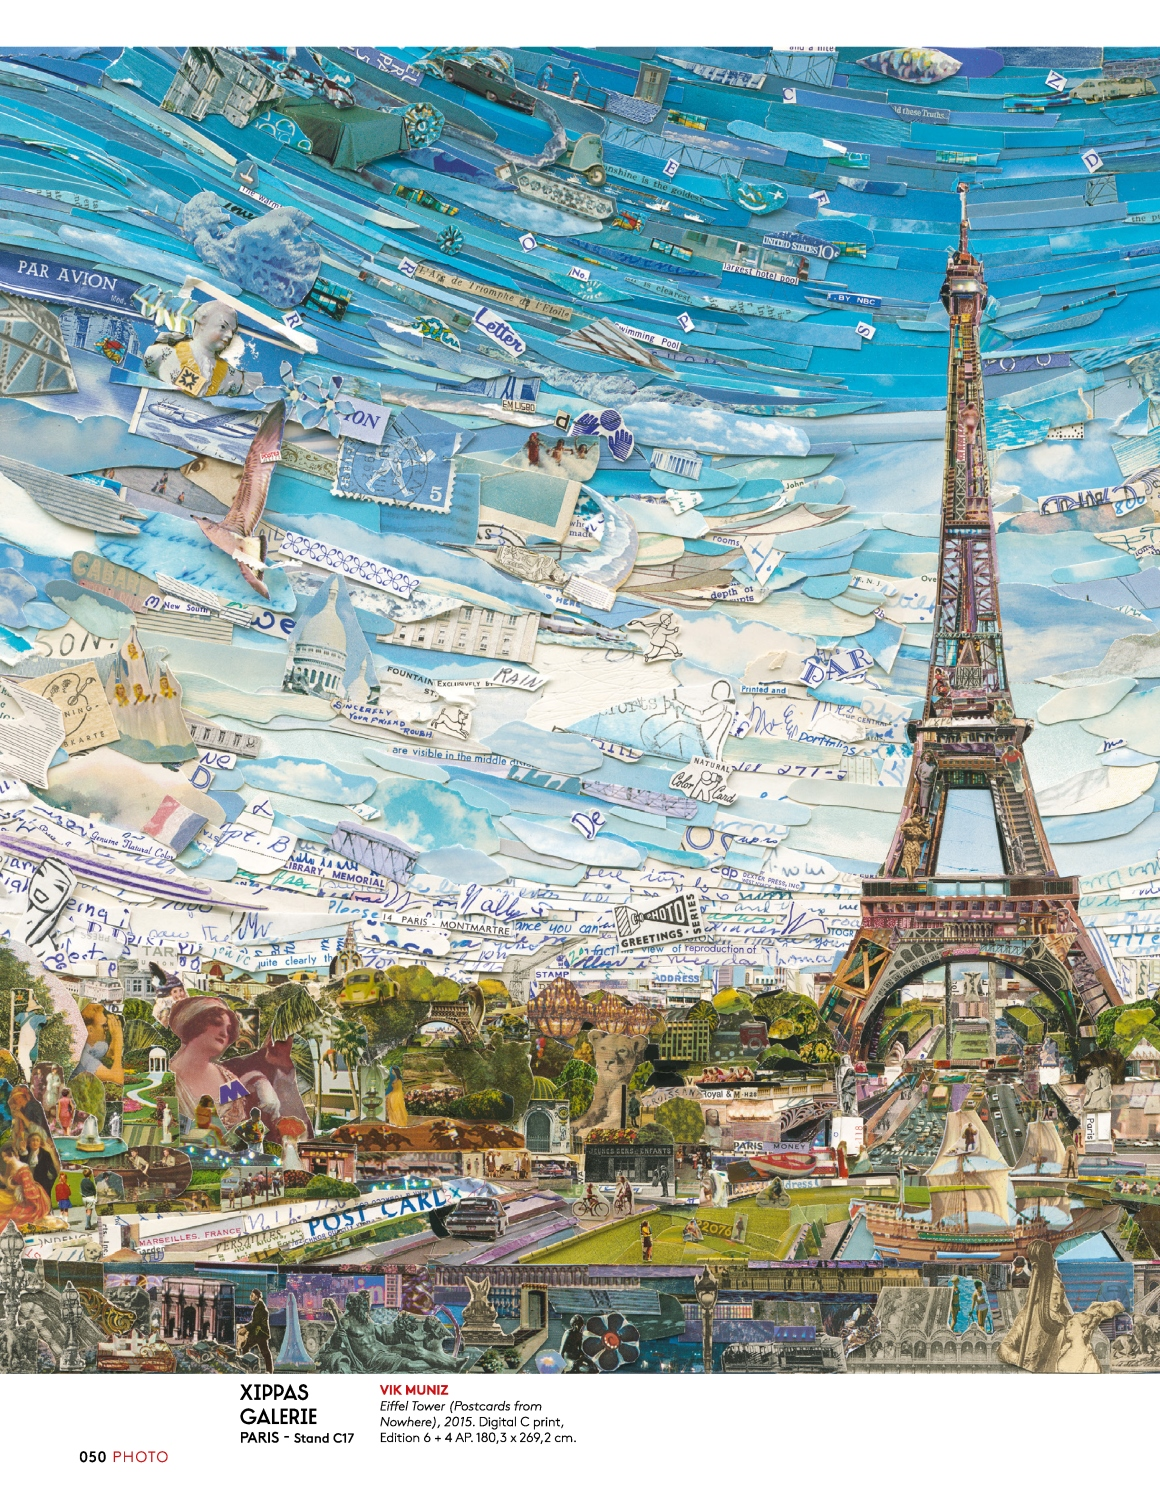 Vik_Muniz-Eiffel_Tower.jpg